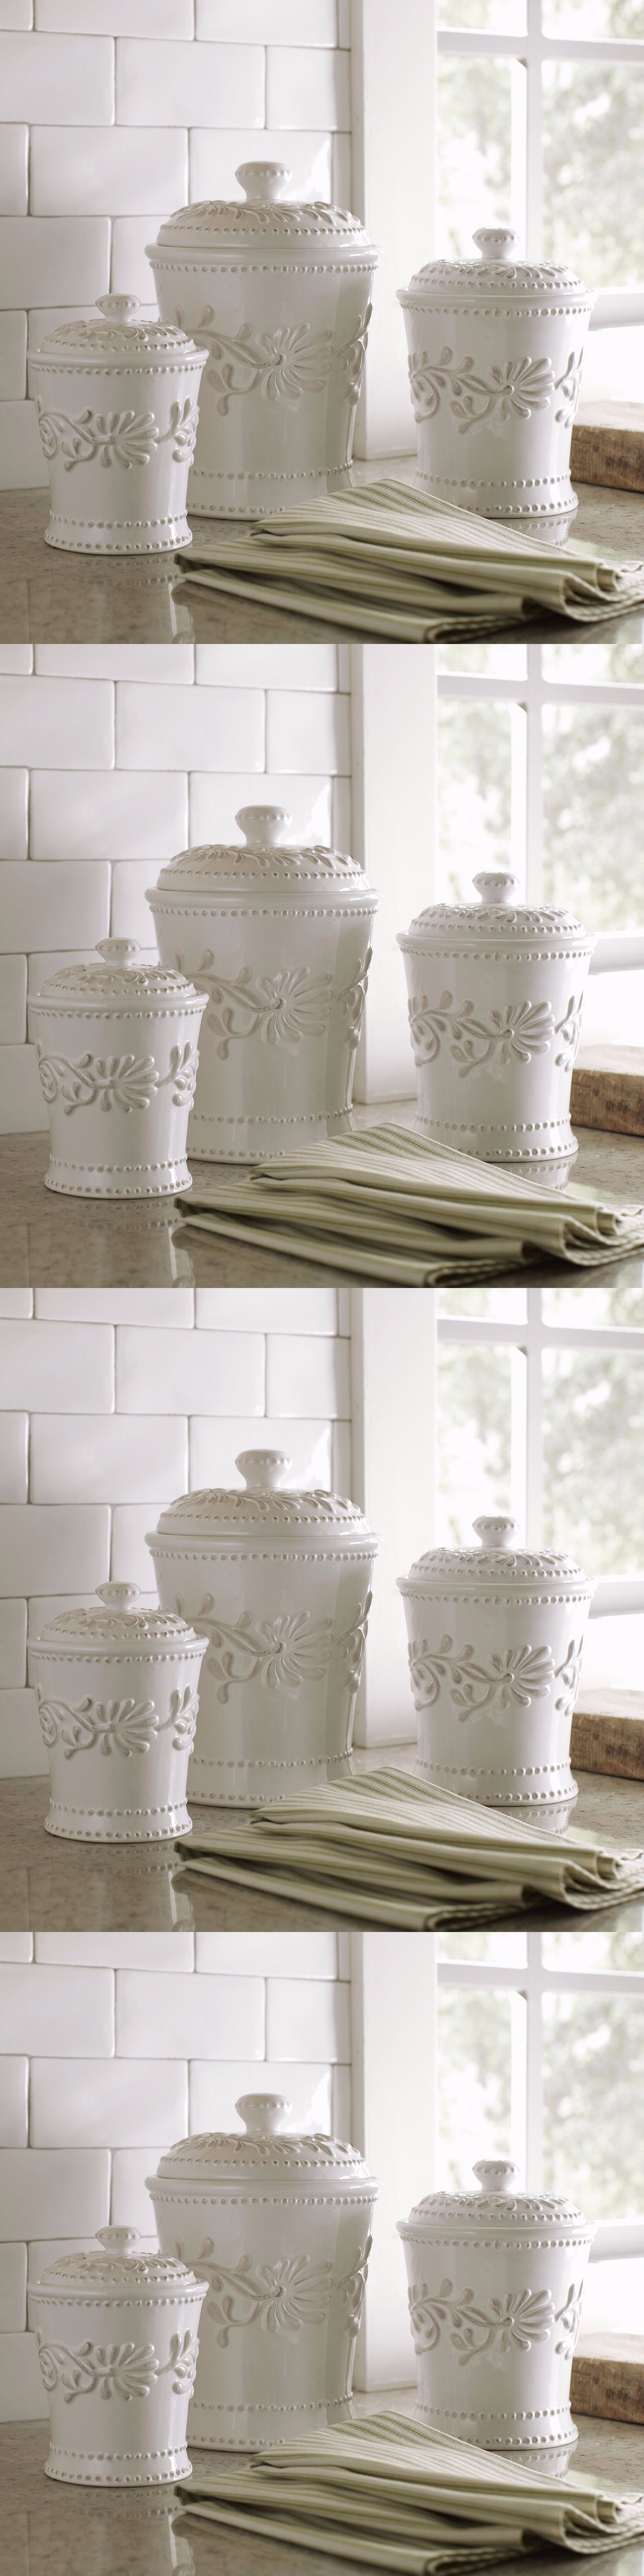 100 elegant kitchen canisters 100 kitchen canister 100